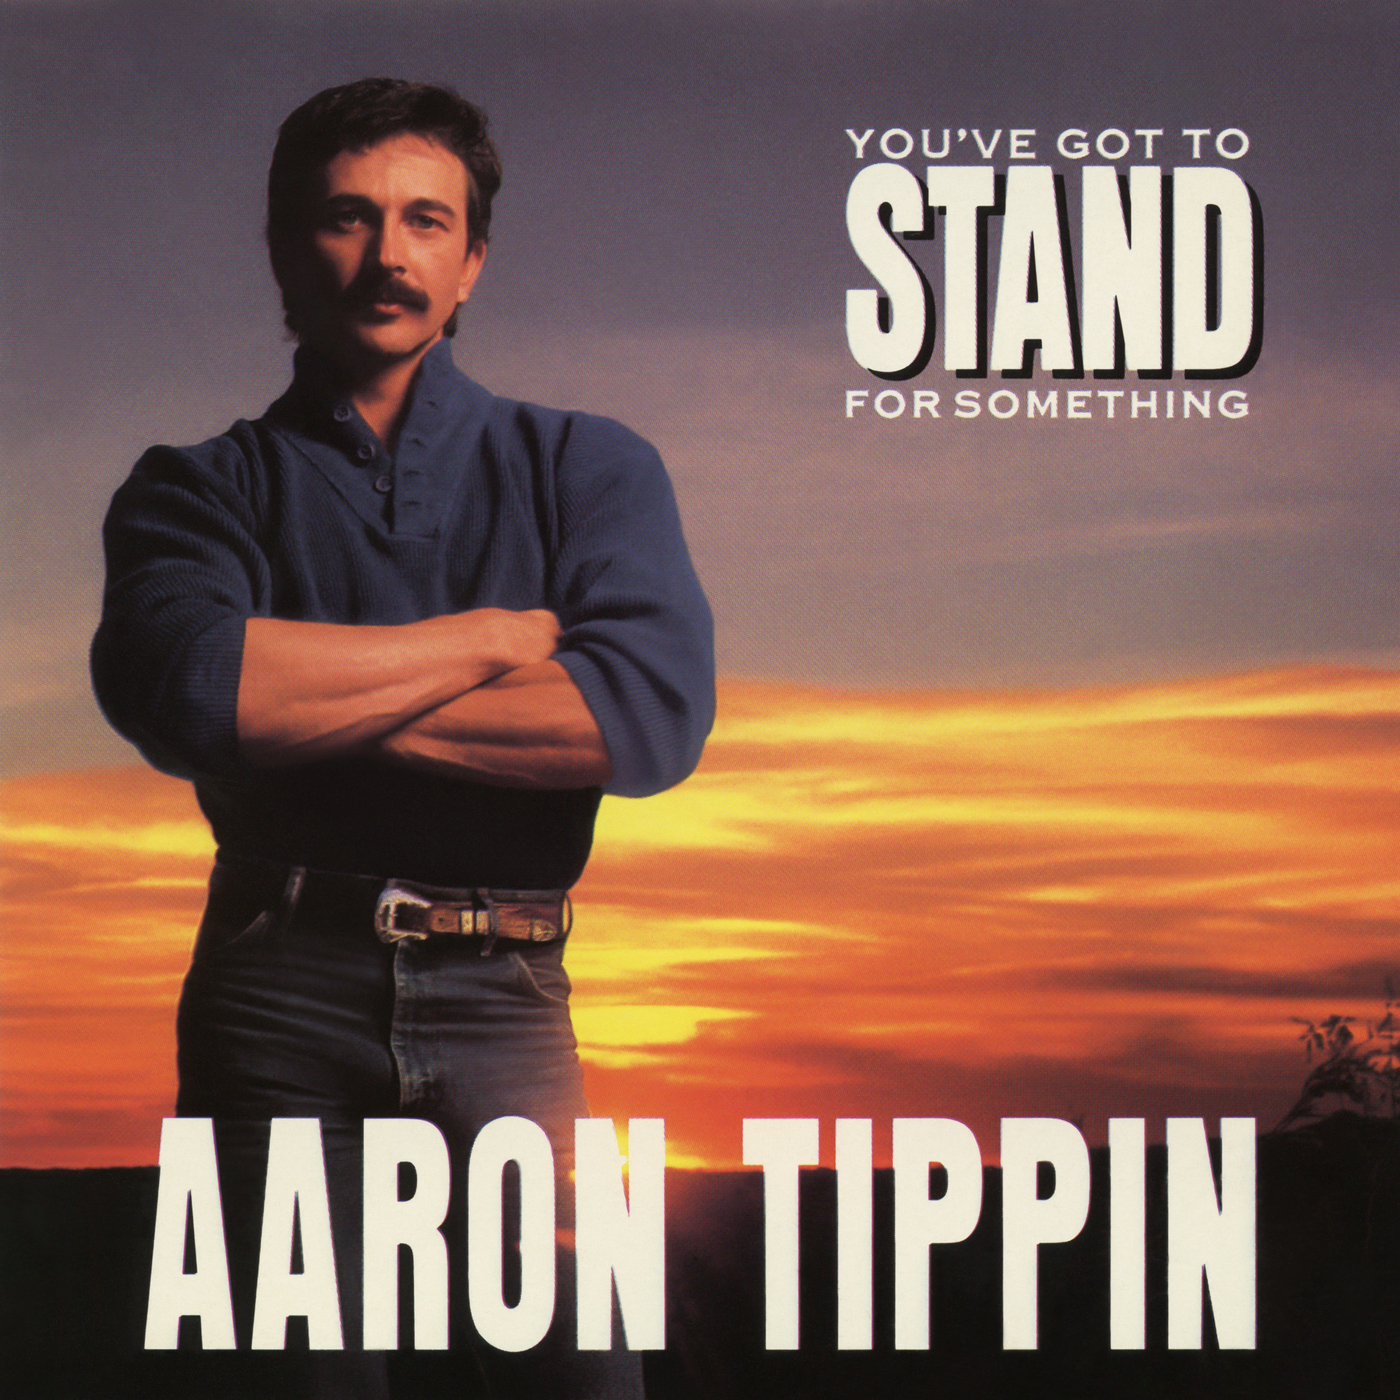 You've Got to Stand for Something - Aaron Tippin